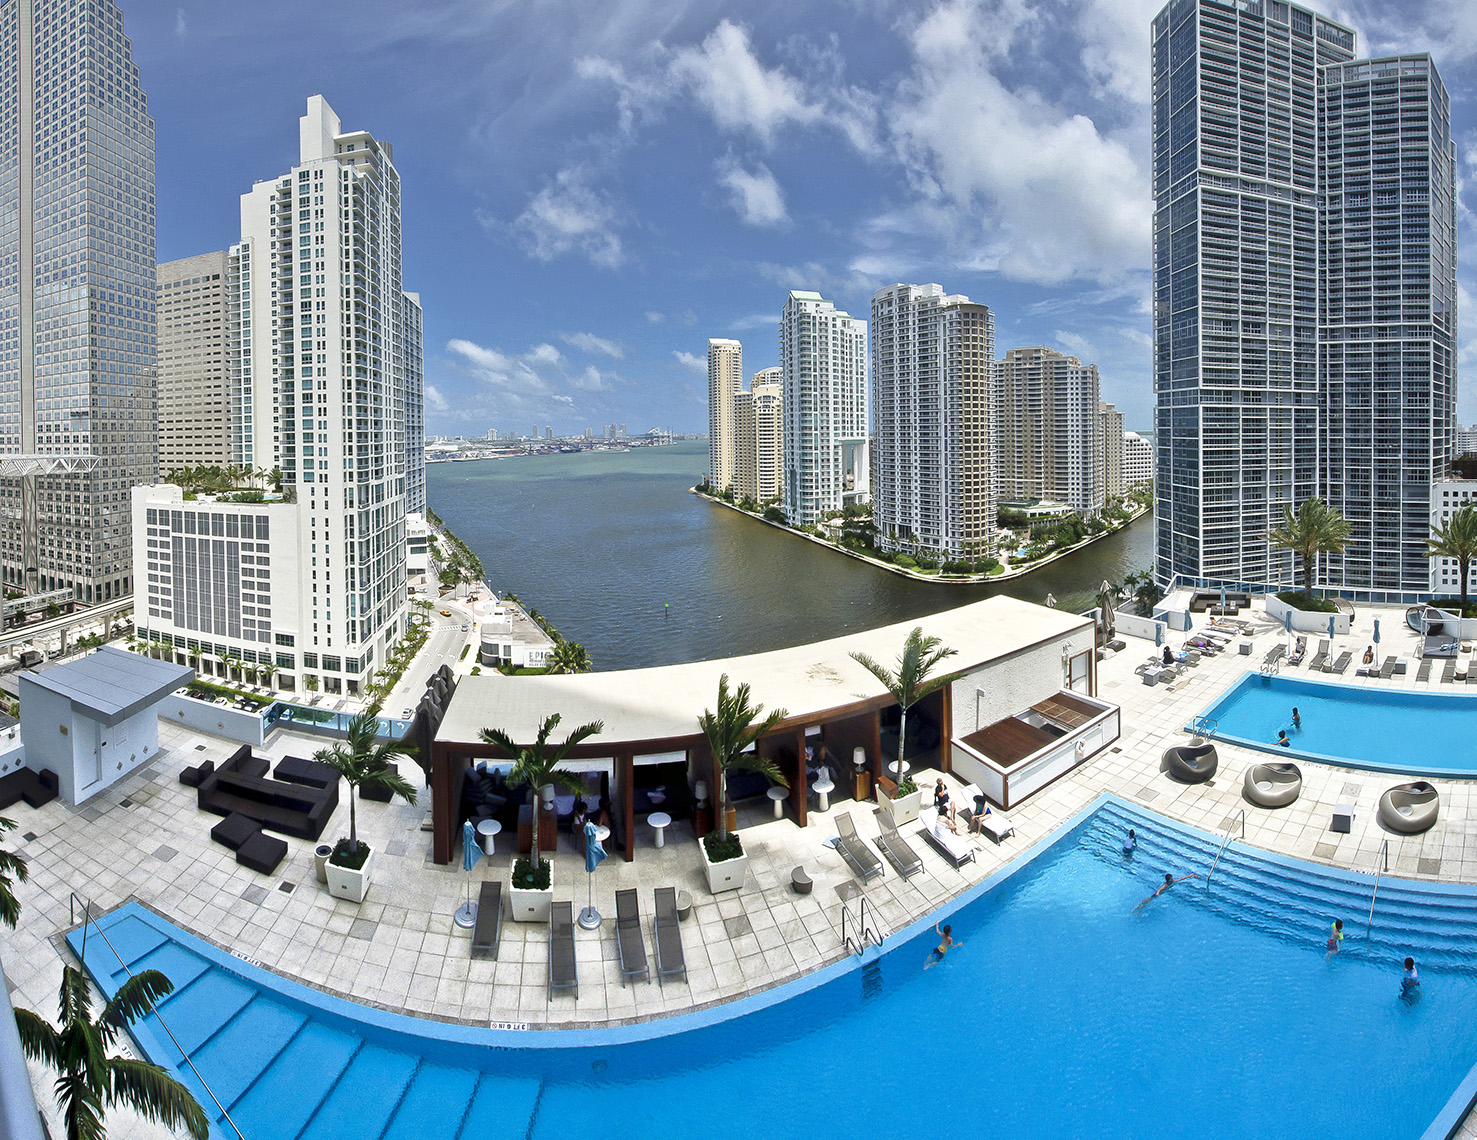 Epic Hotel swimming pool, Miami_APF